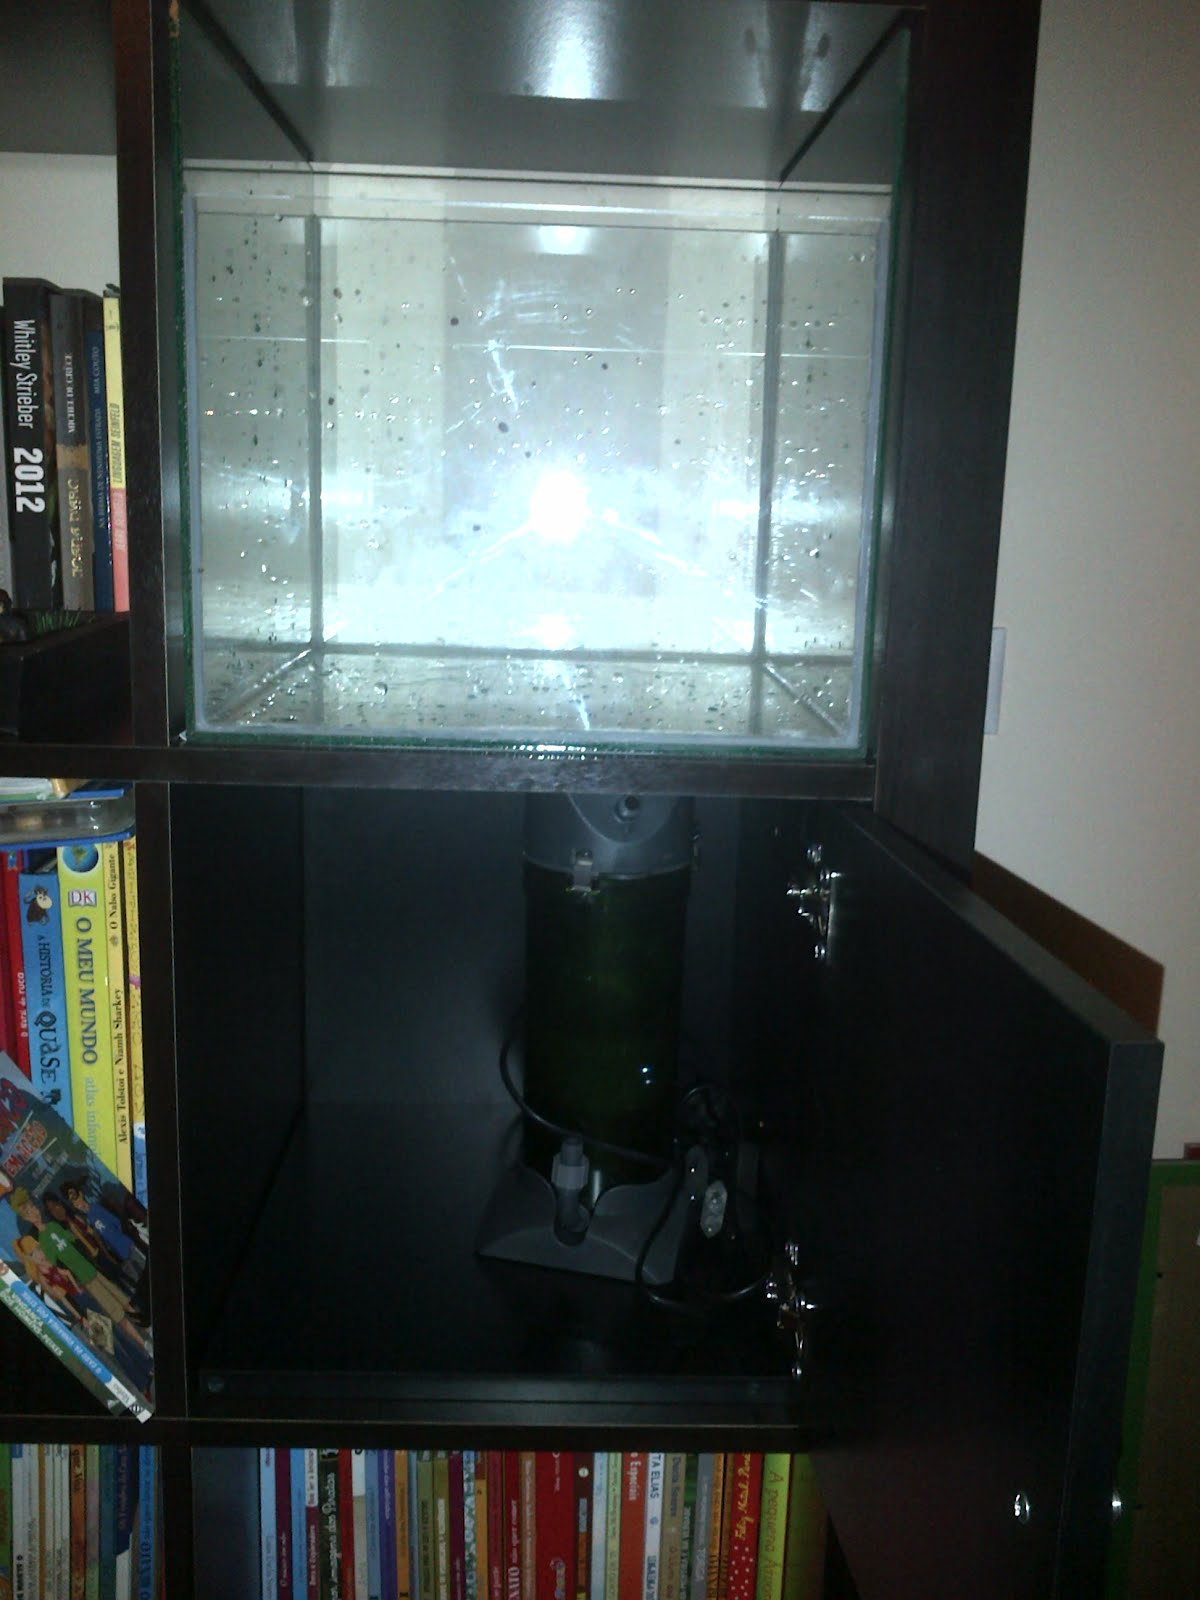 Ikea Grundtal Kitchen Series ~   aquarium to put the filter and other stuff needed for the aquarium to